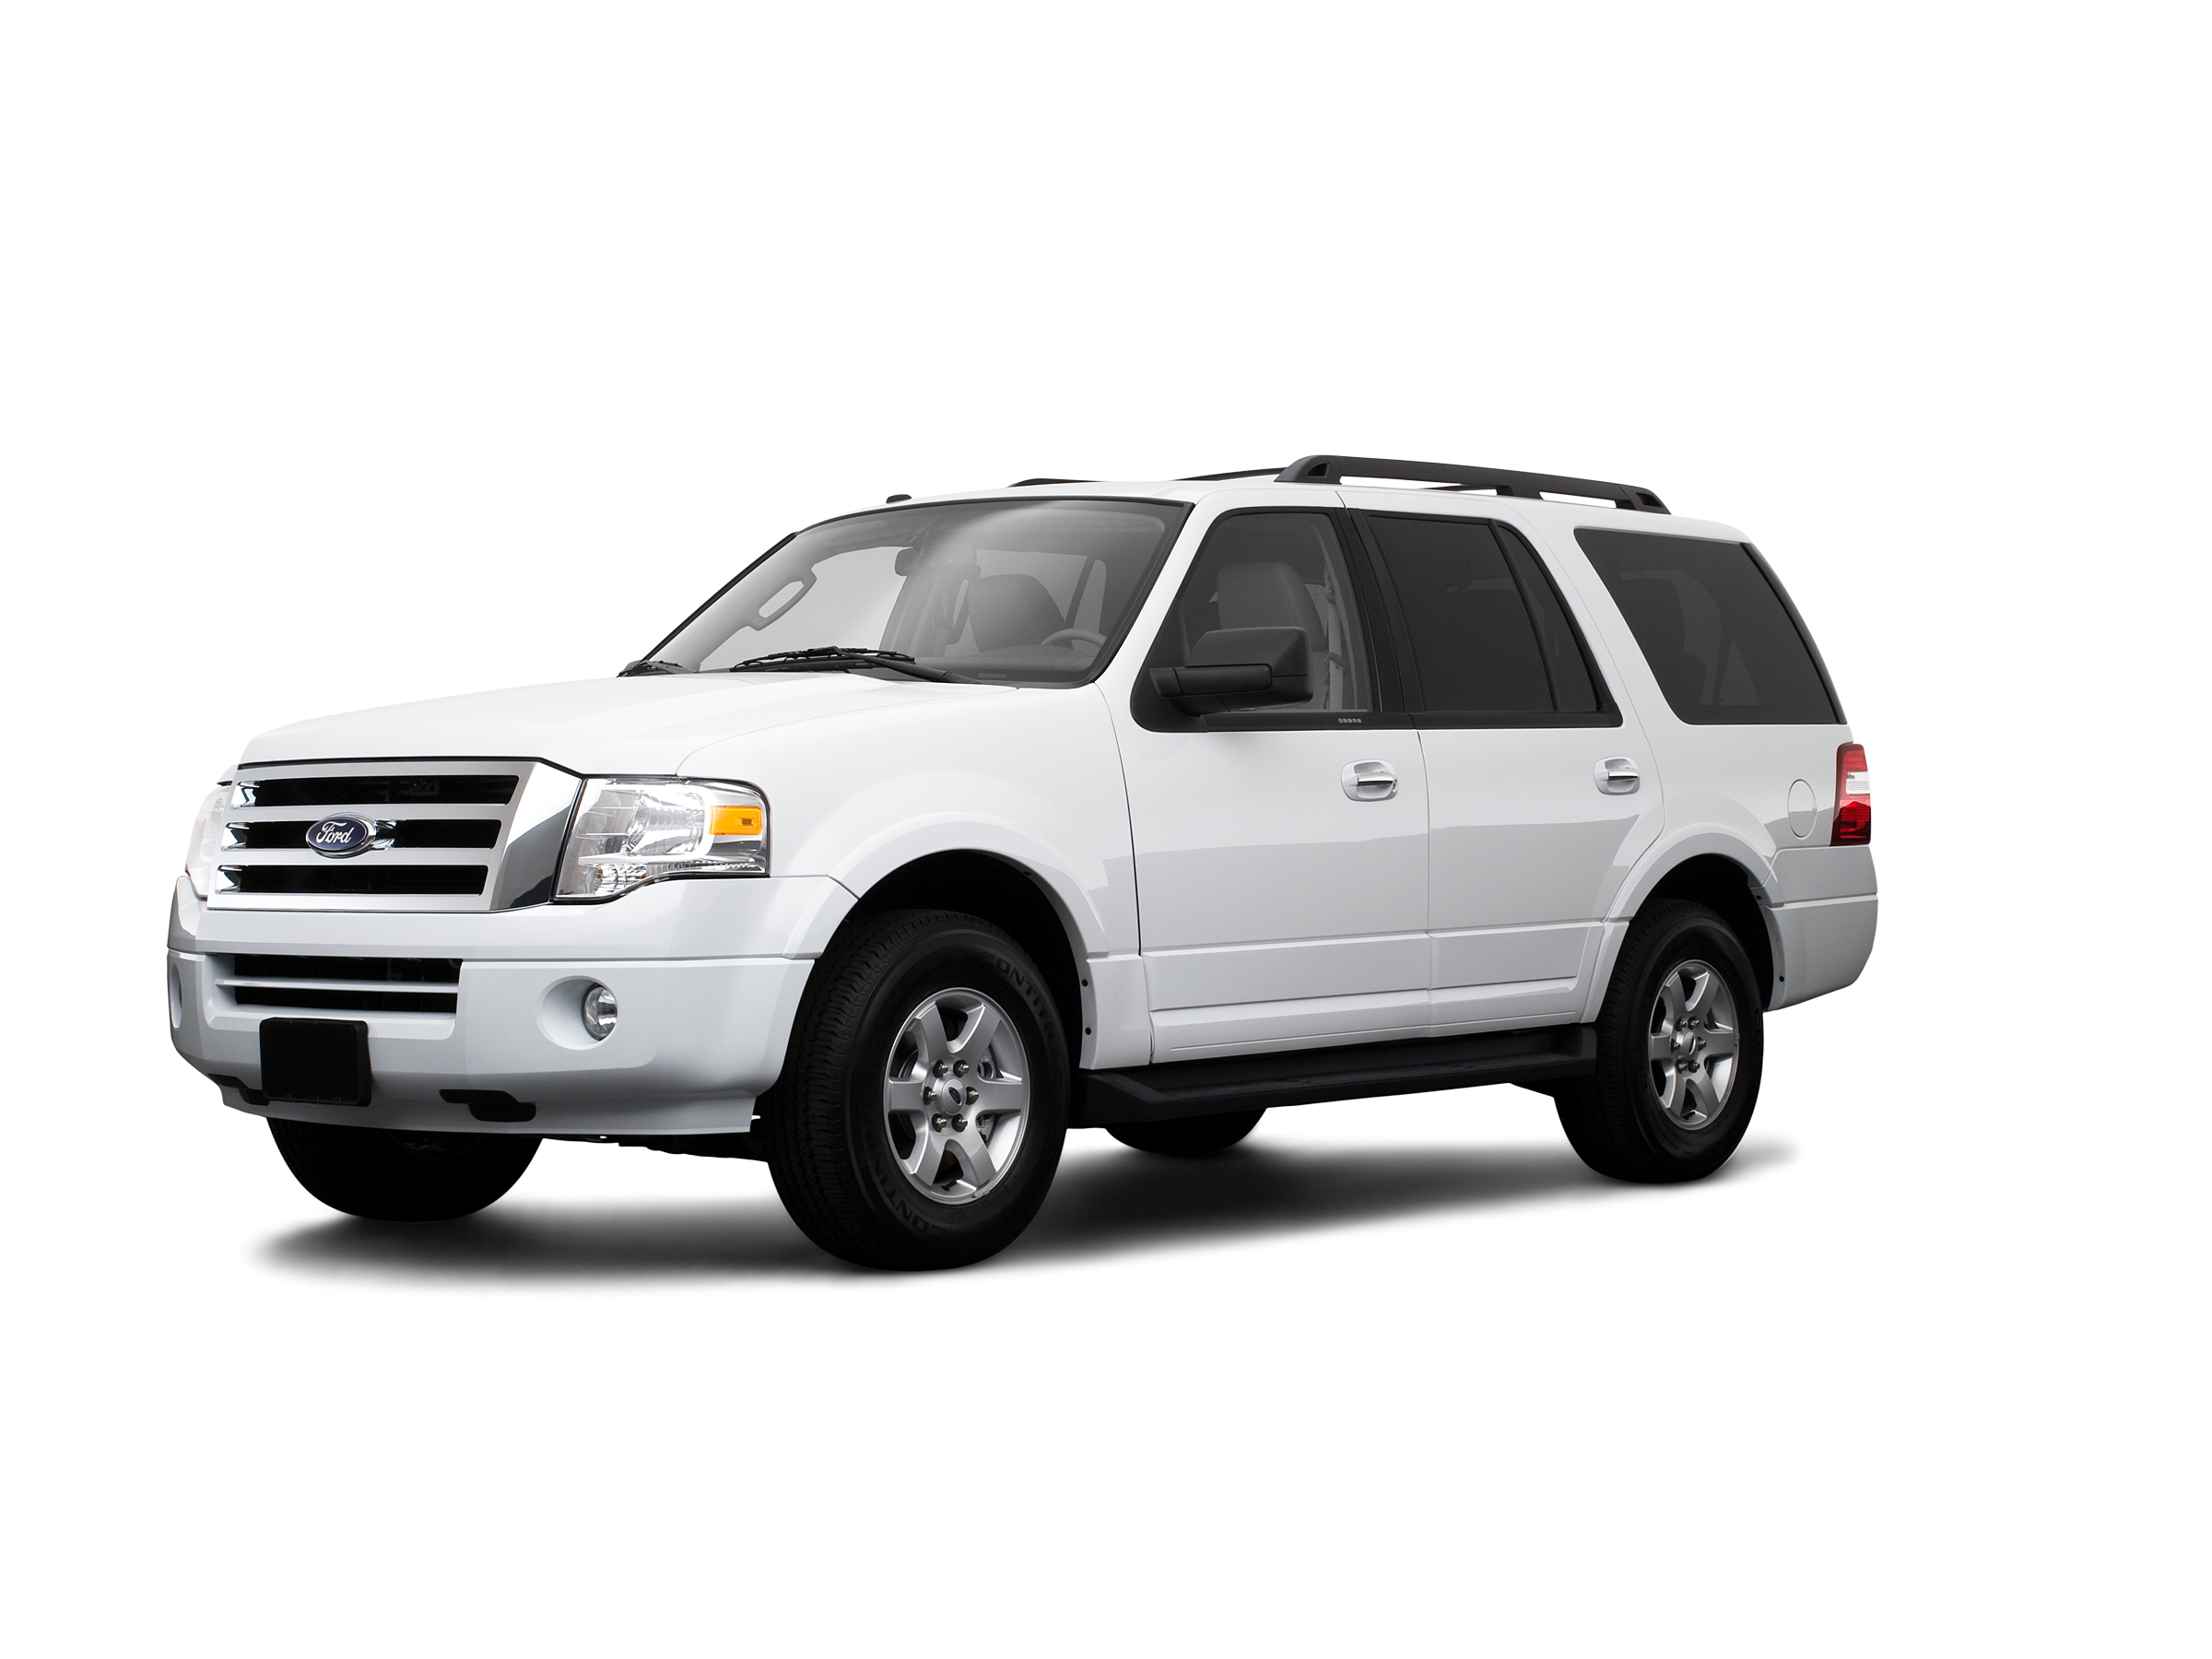 2009 Ford Expedition Values Cars For Sale Kelley Blue Book